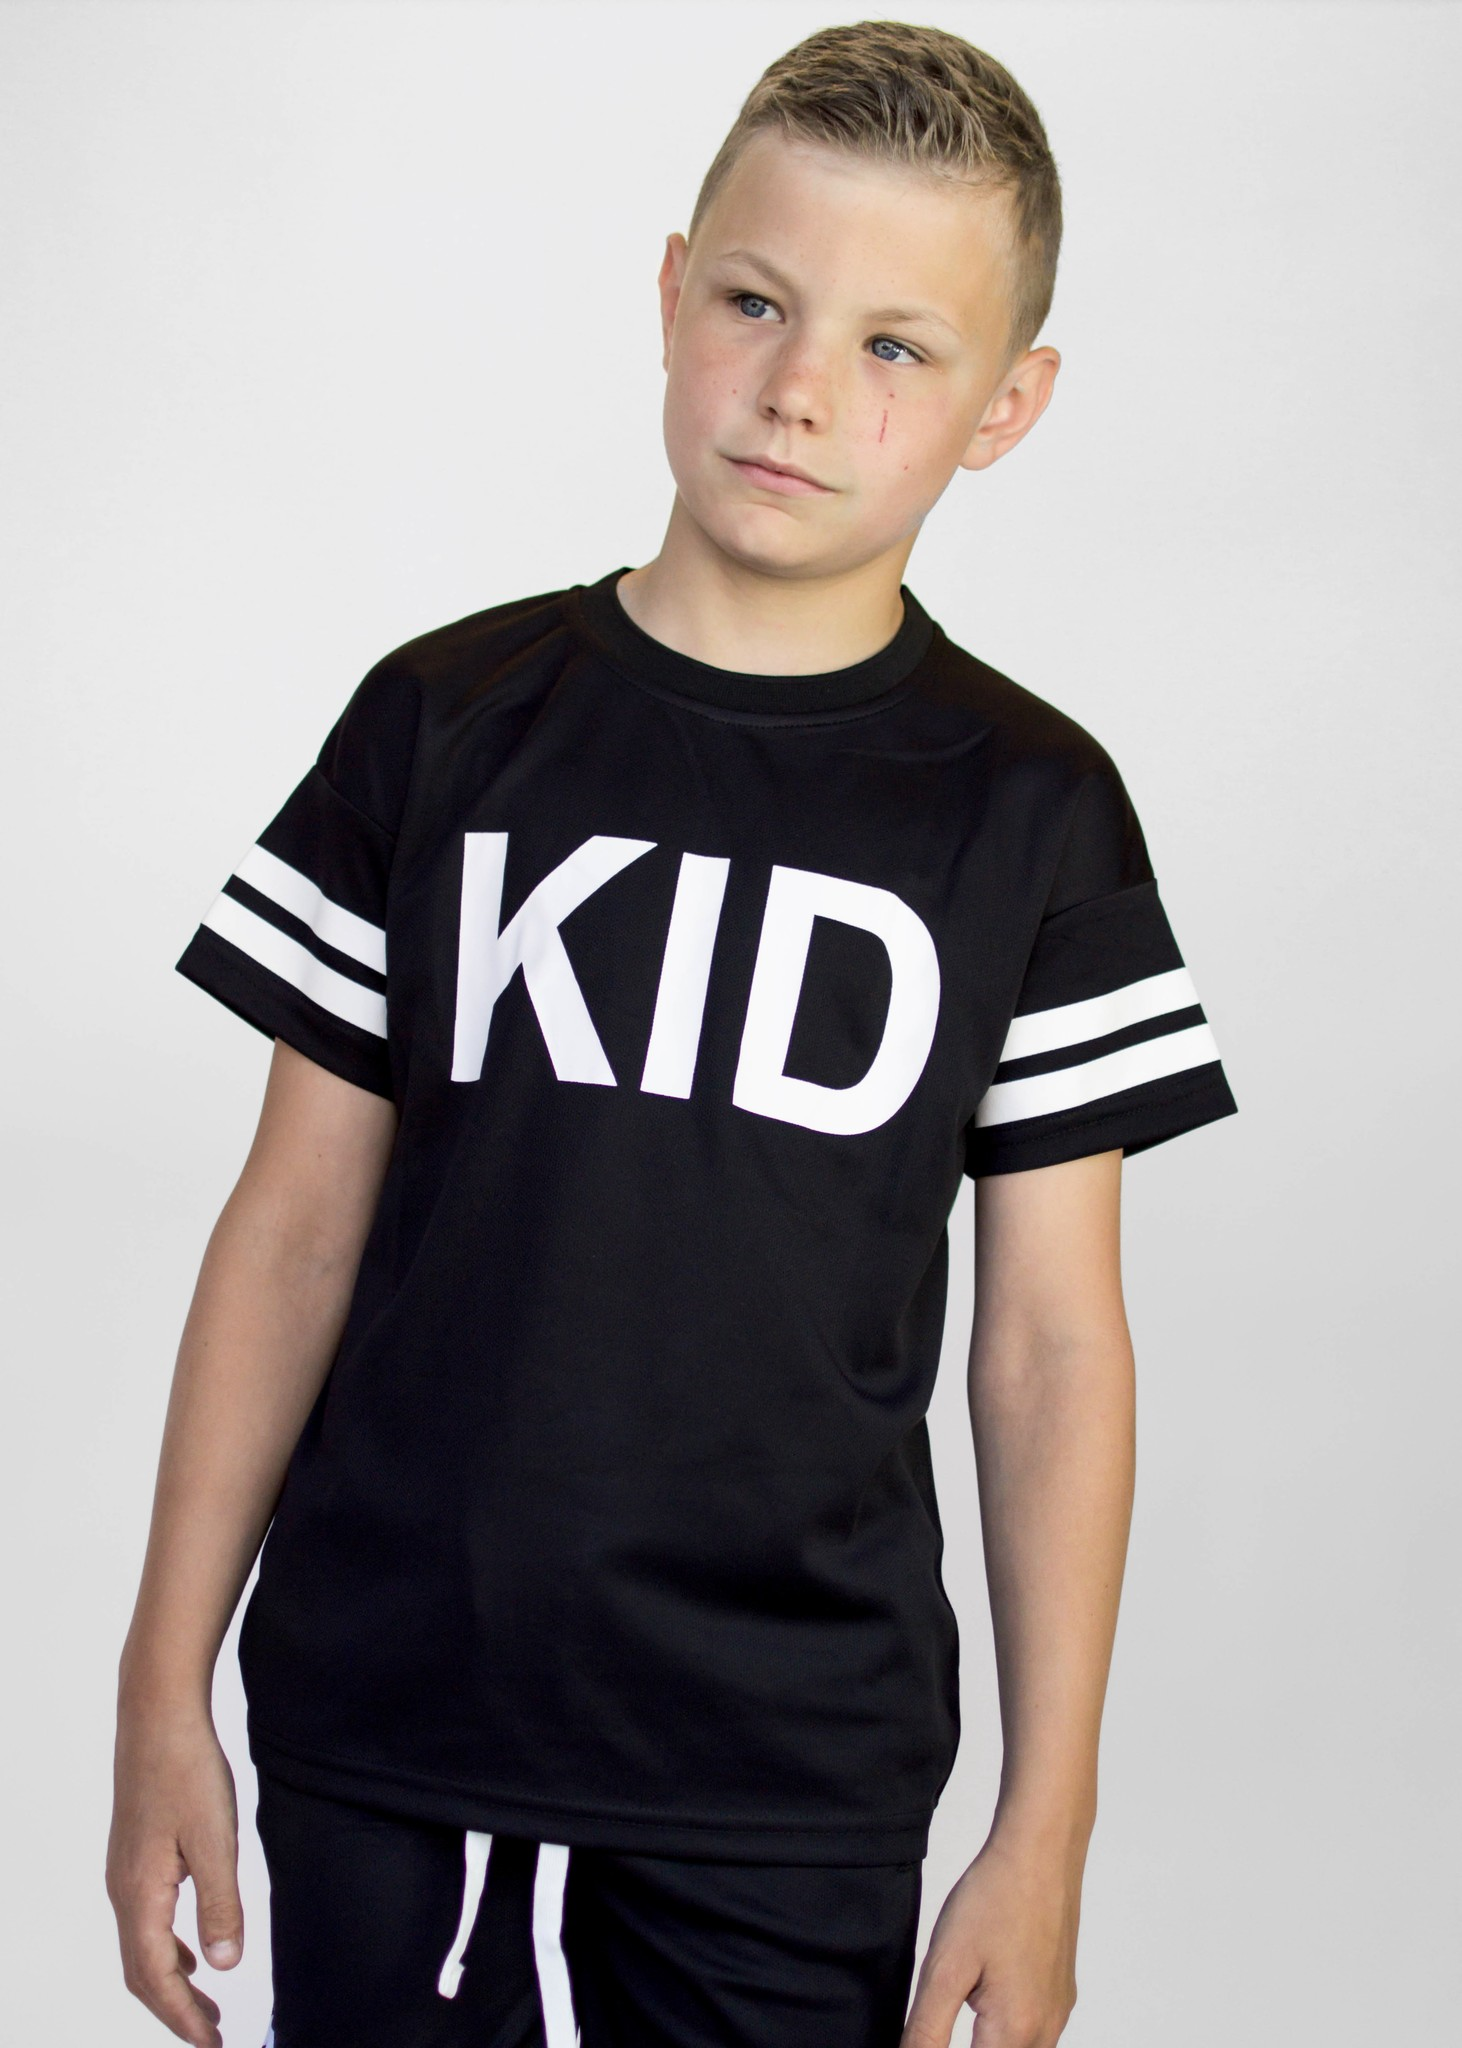 Beaubella Kids BLACK BASEBALL SHIRT| BLACK COMFORTABLE SHIRT | BOYS CLOTHING